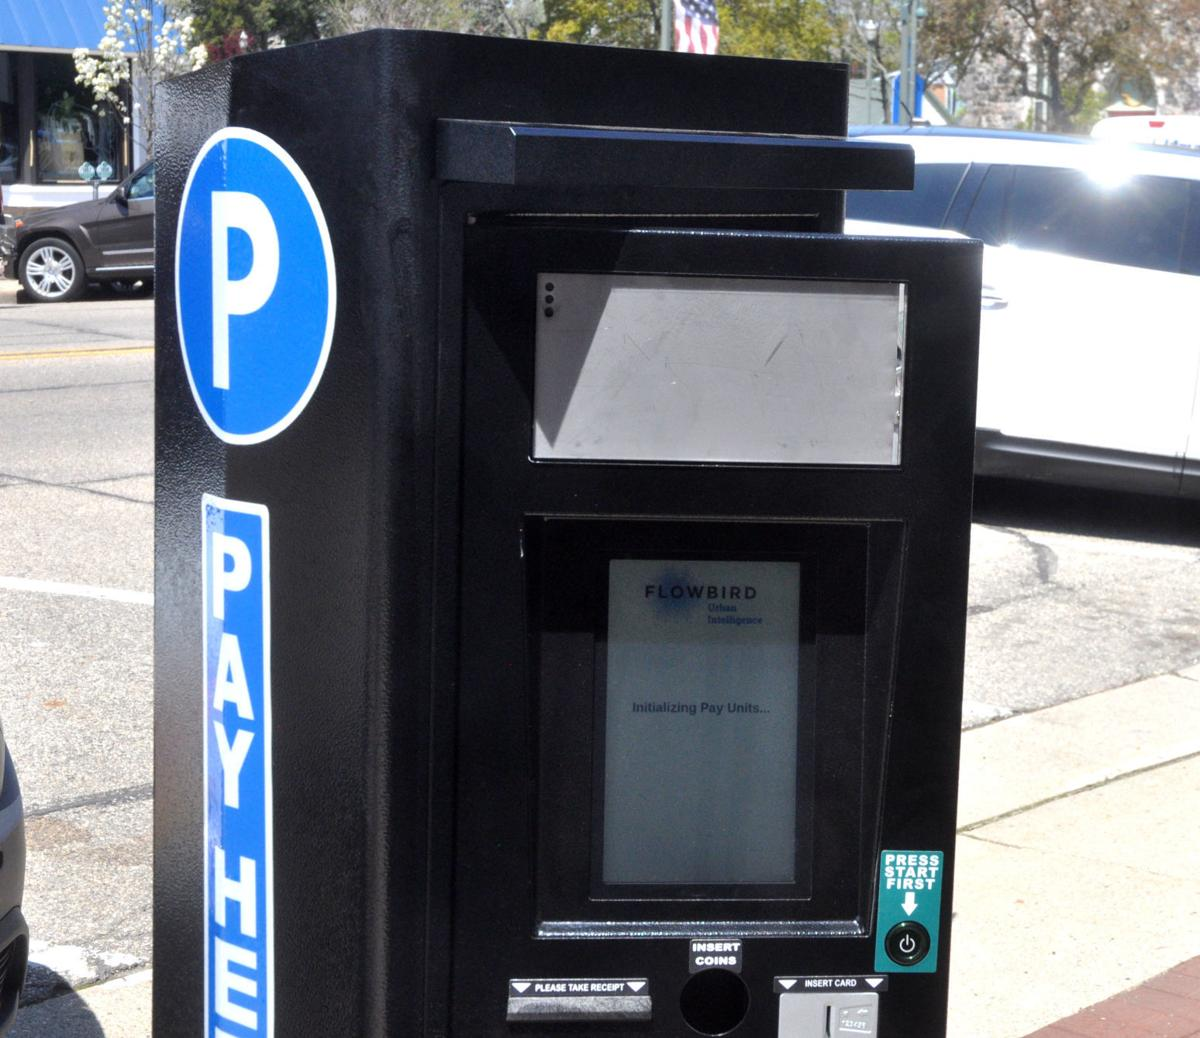 Fifty new touch-screen parking kiosks were installed in downtown Lake Geneva last week